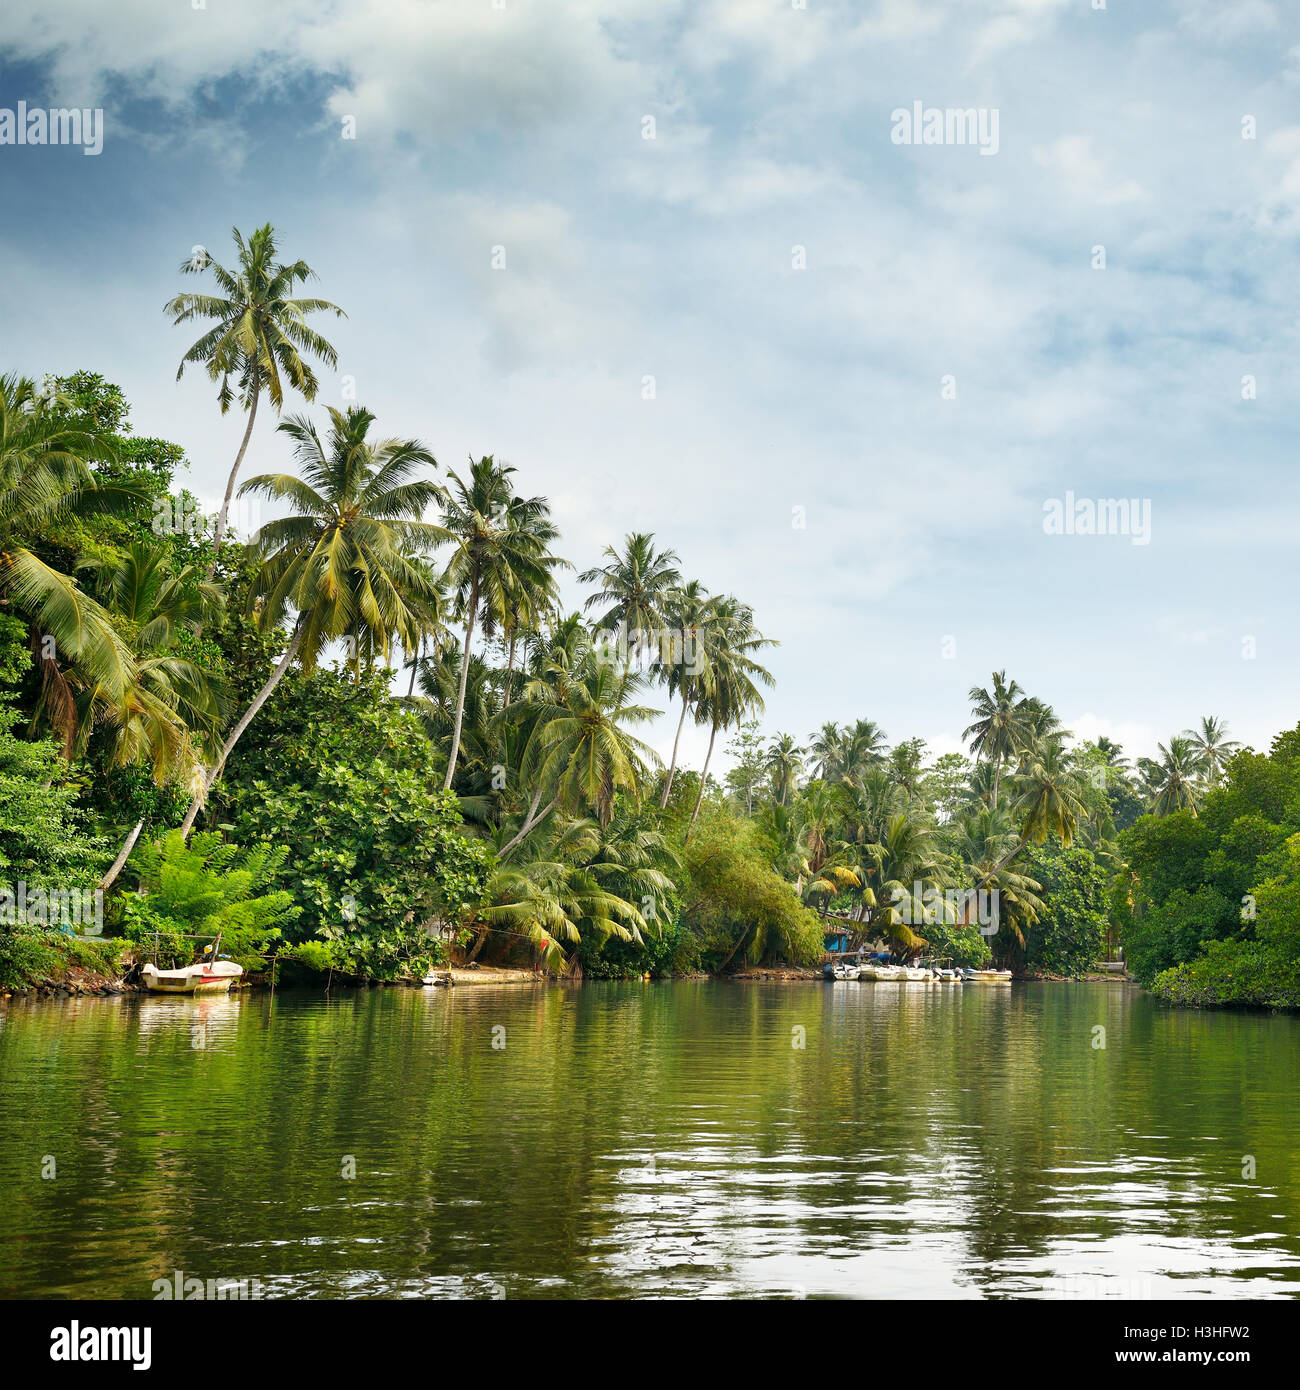 129.5 x 162.5 cm (51 x 64 in. Equatorial Forest High Resolution Stock Photography And Images Alamy